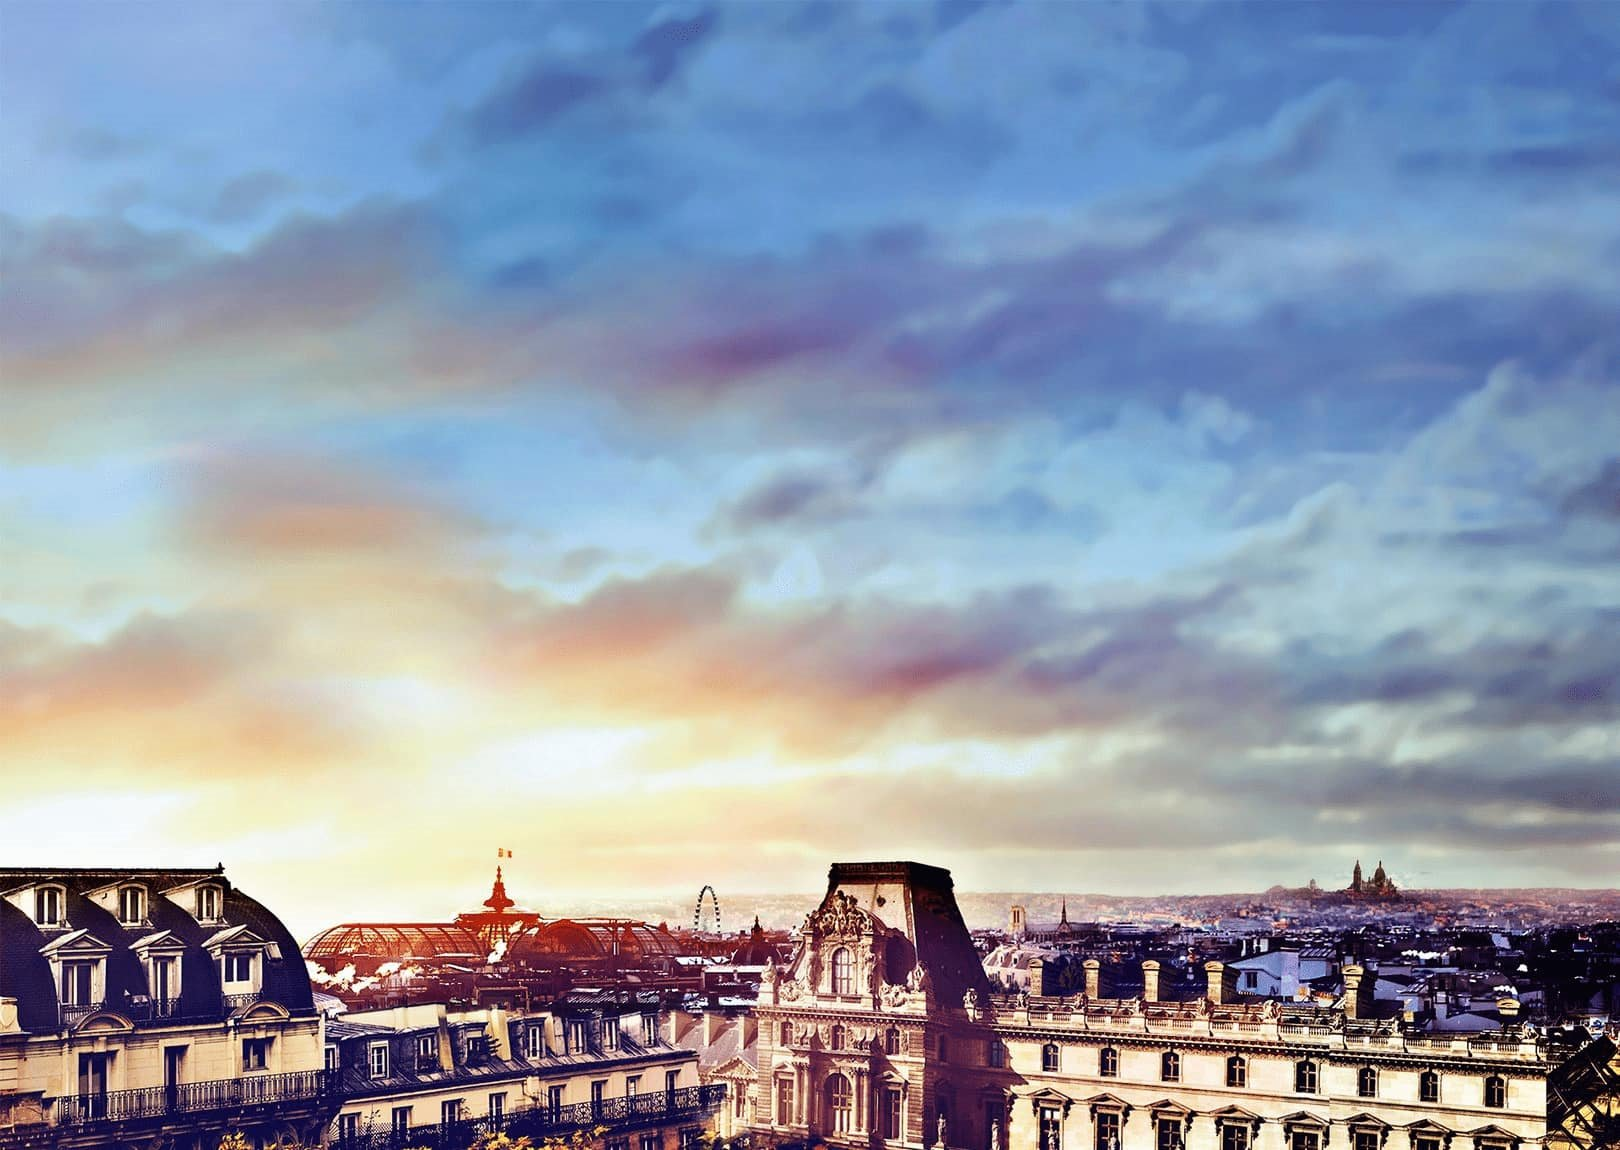 paris-illustration-background-opti.jpg